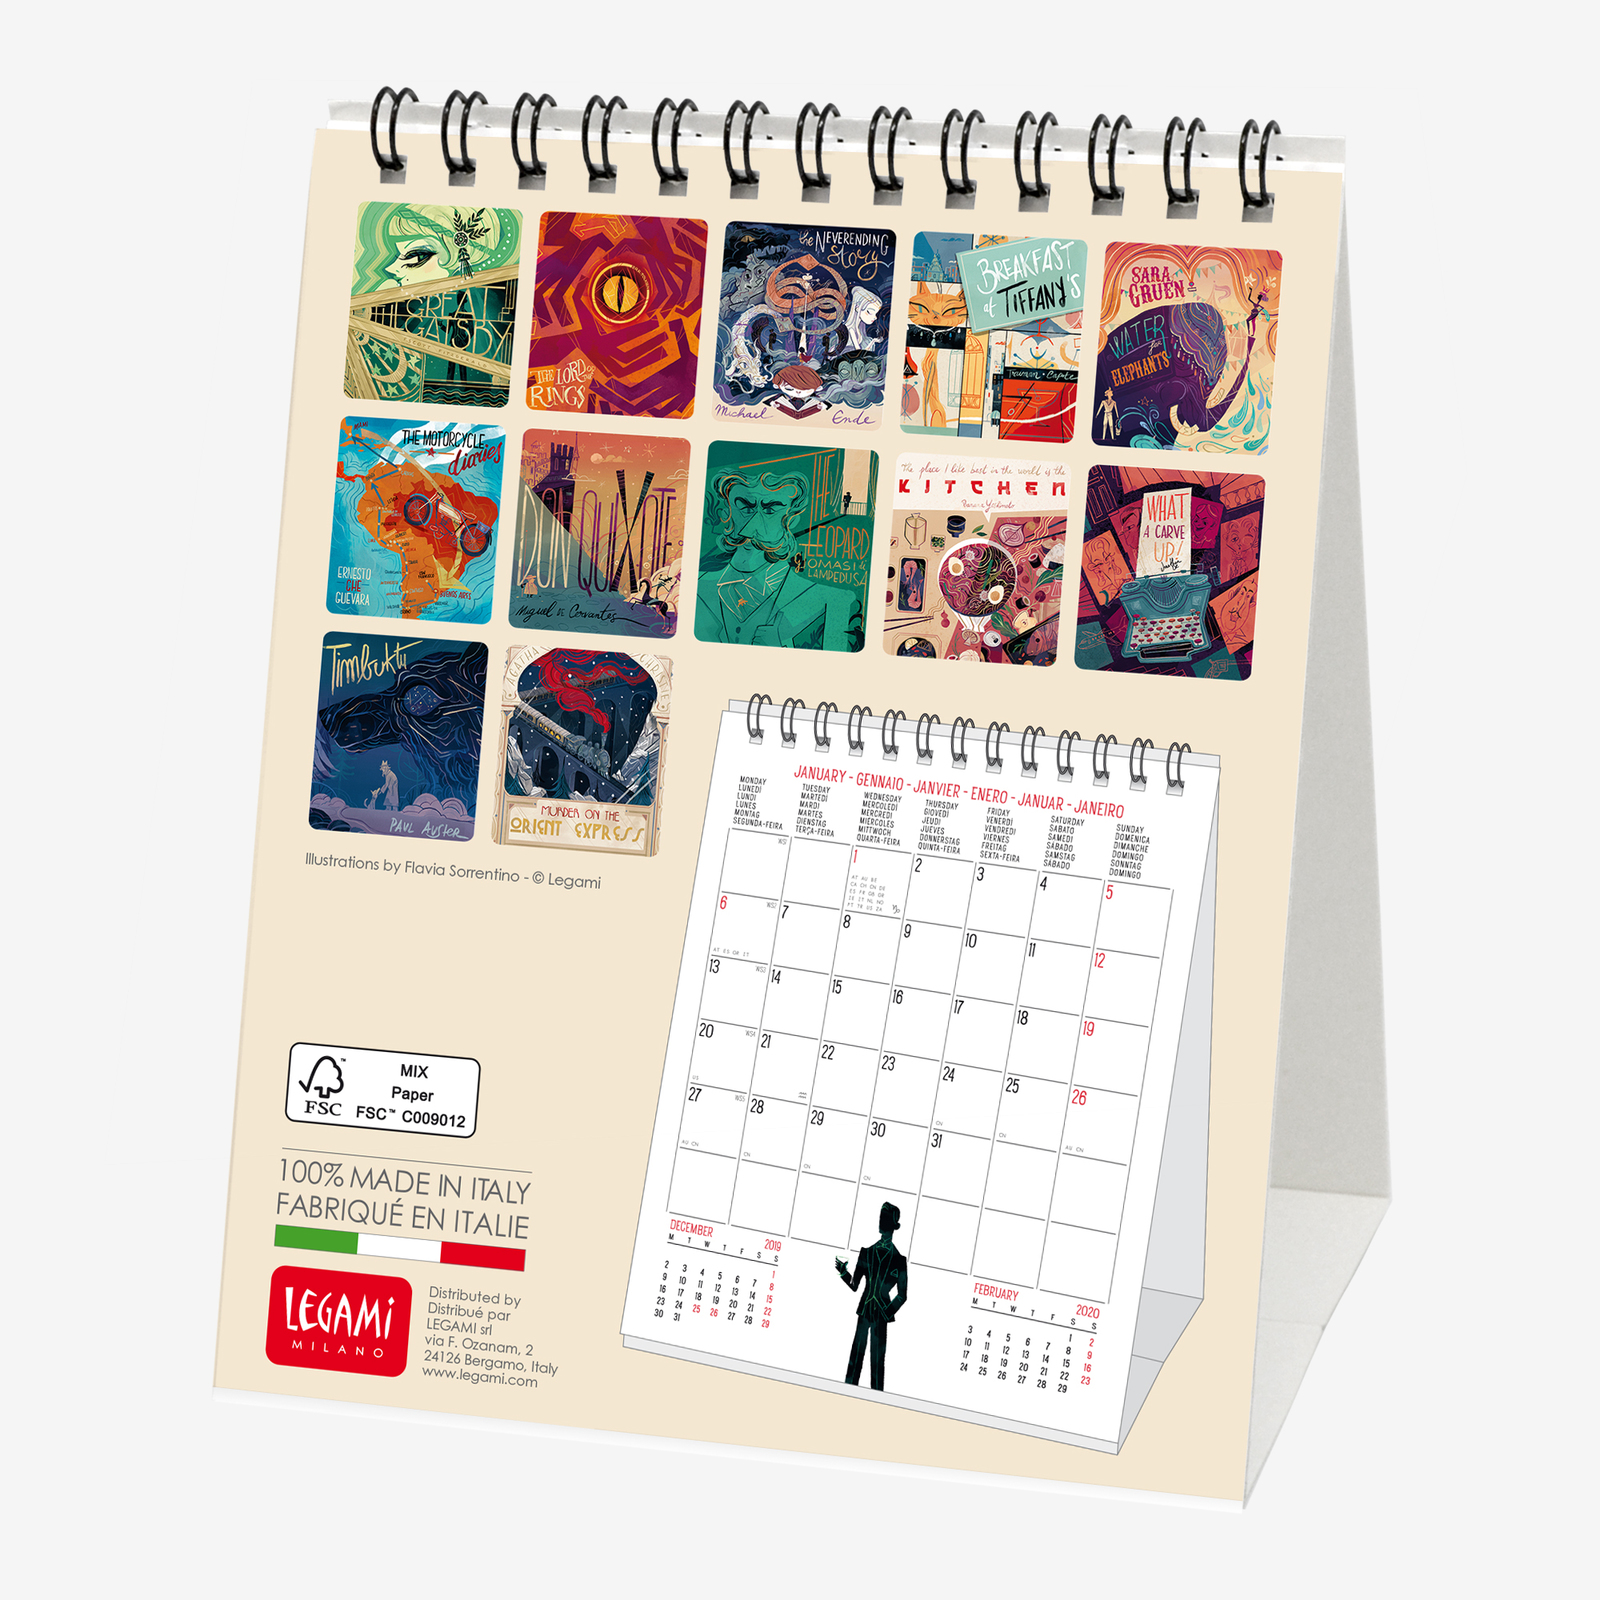 2020 Desk Calendar.Legami Book Lover S 2020 Desk Calendar